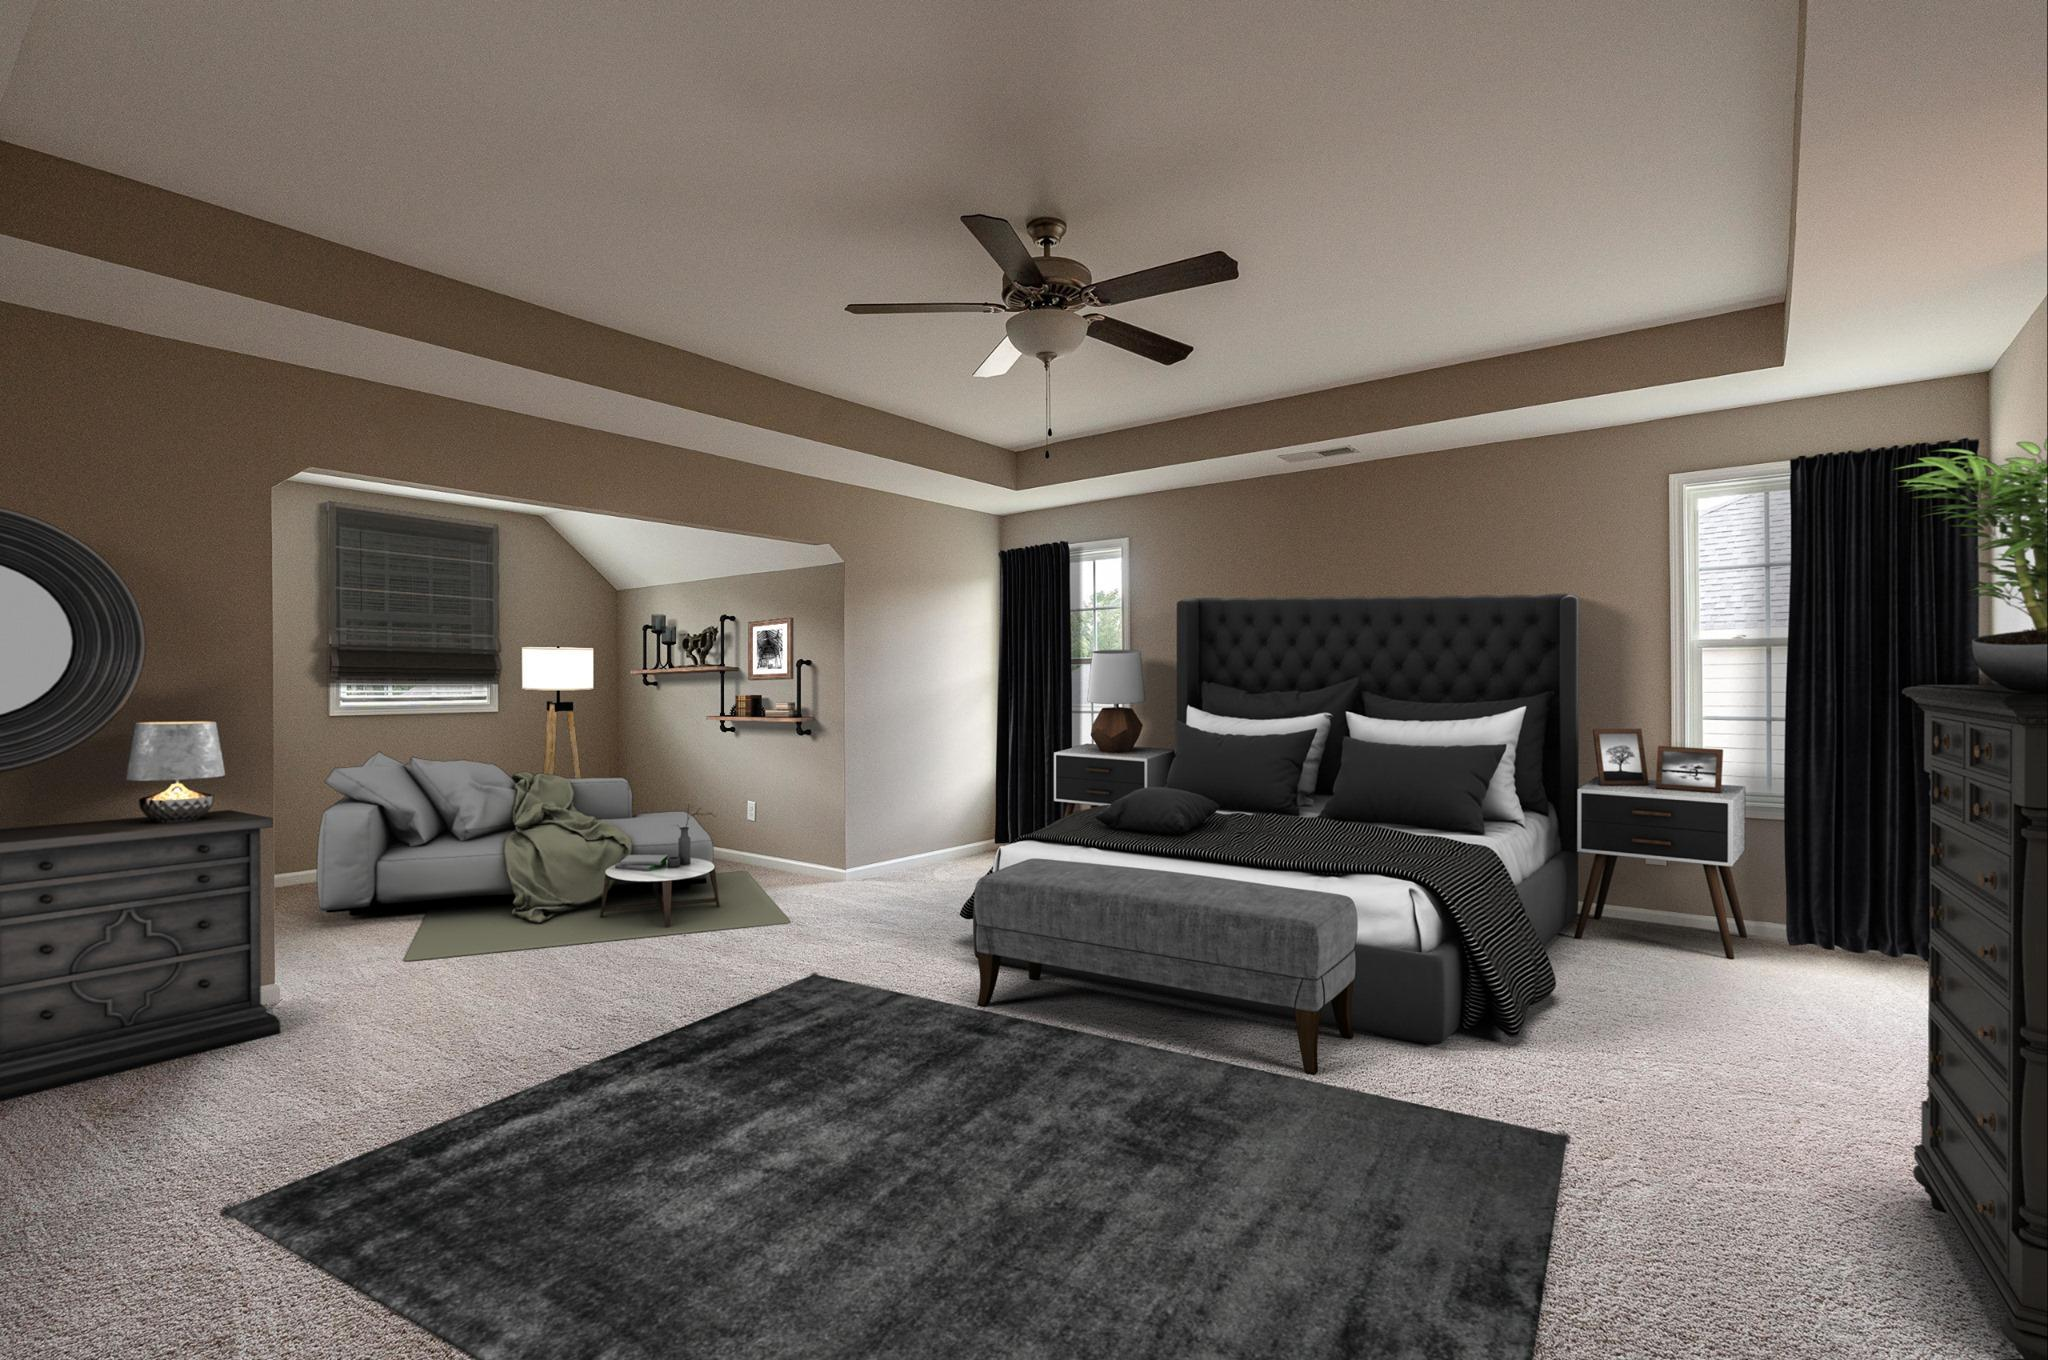 Bedroom featured in the Westover By Hughston Homes in Macon, GA